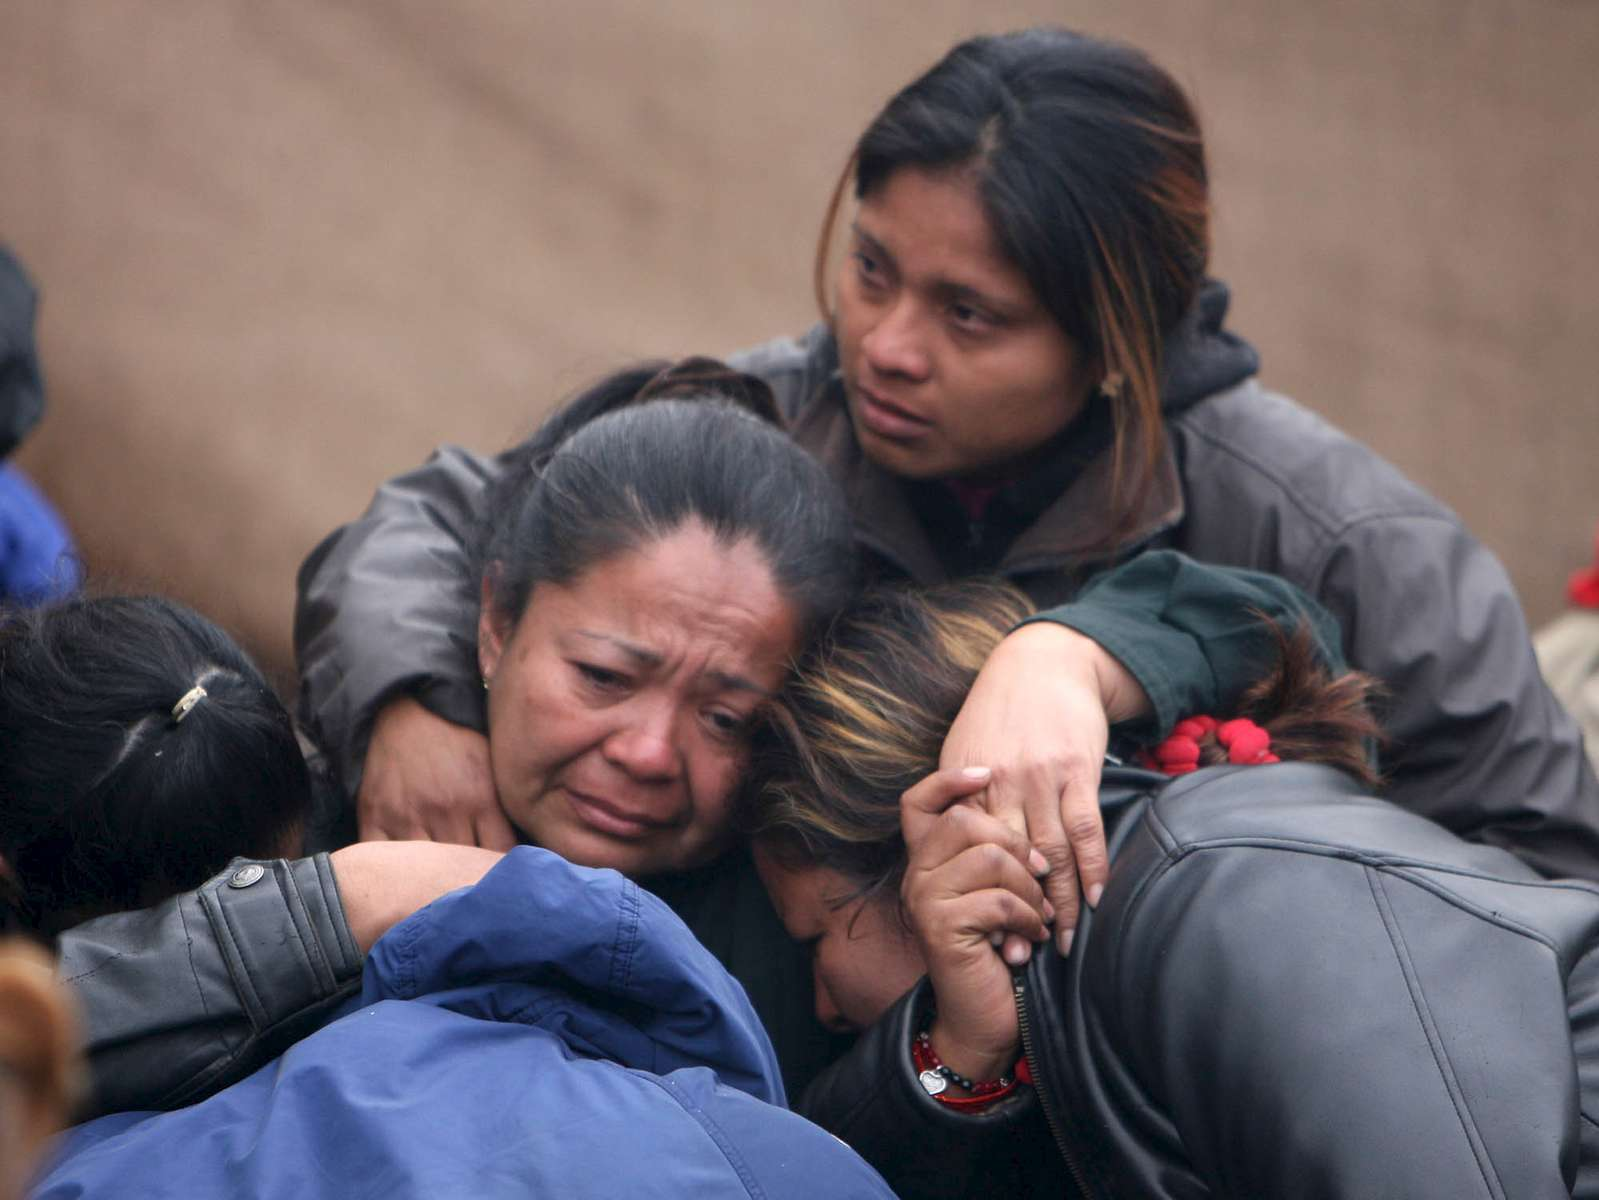 Family members mourn after a grim early morning press conference in front of the Pasta de Conchos coal mine in San Juan de Sabinas in the Mexican state of Coahuila Tuesday. Family members waited outside the Pasta de Conchos coal mine Tuesday. In the Early morning on Sunday 66 miners were trapped 163 meters below ground after an explosion.Sharón Steinmann / Houston Chronicle